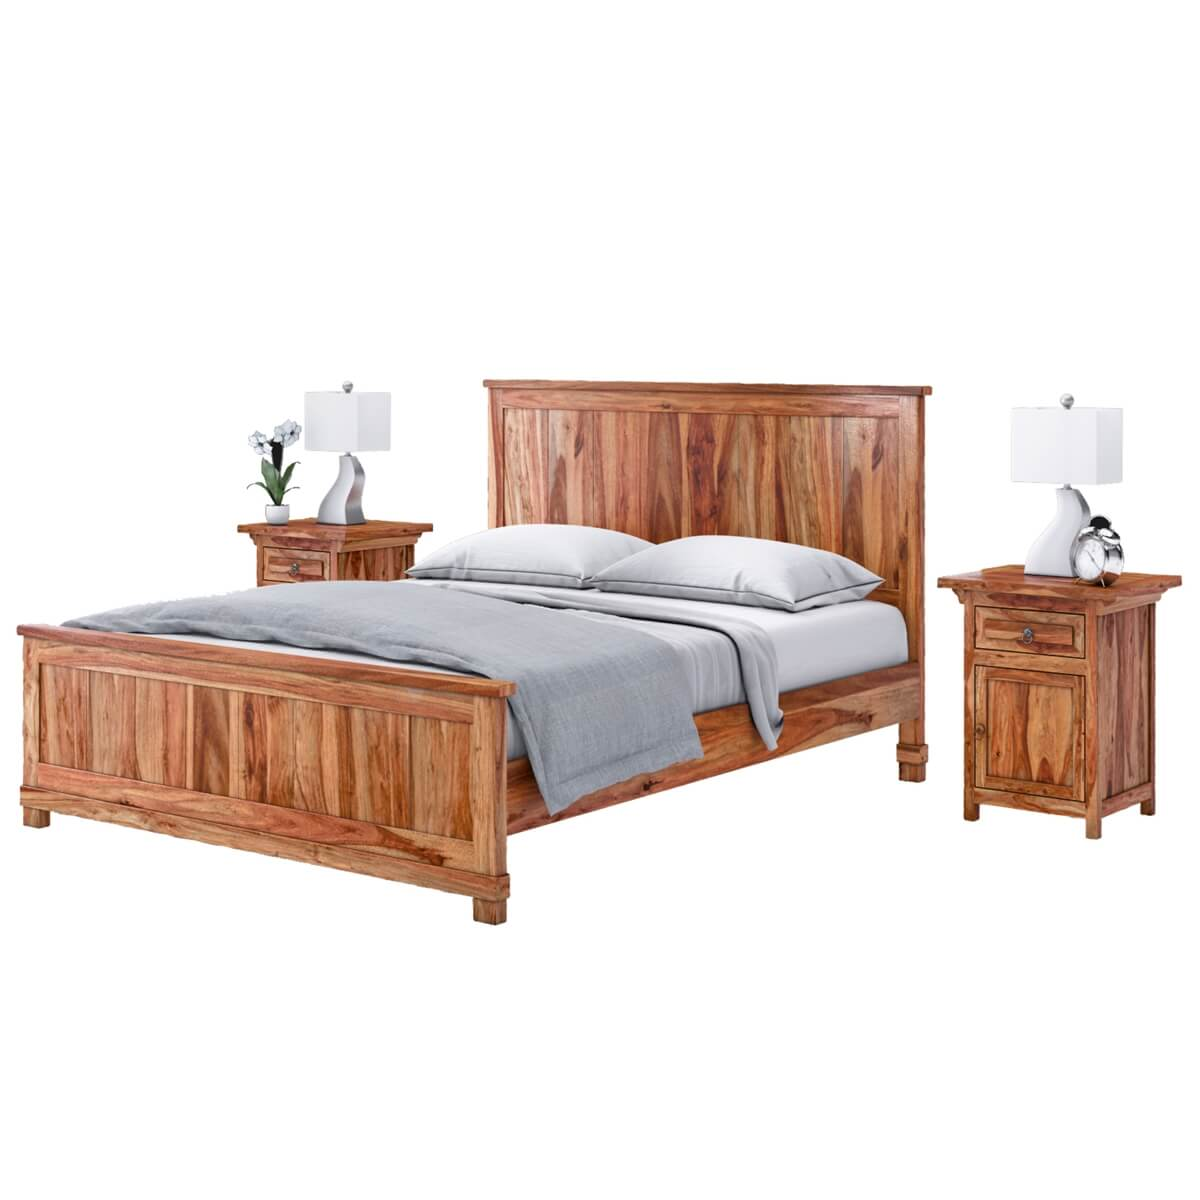 Modern mission solid wood california king size platform bed - Kingsize platform beds ...